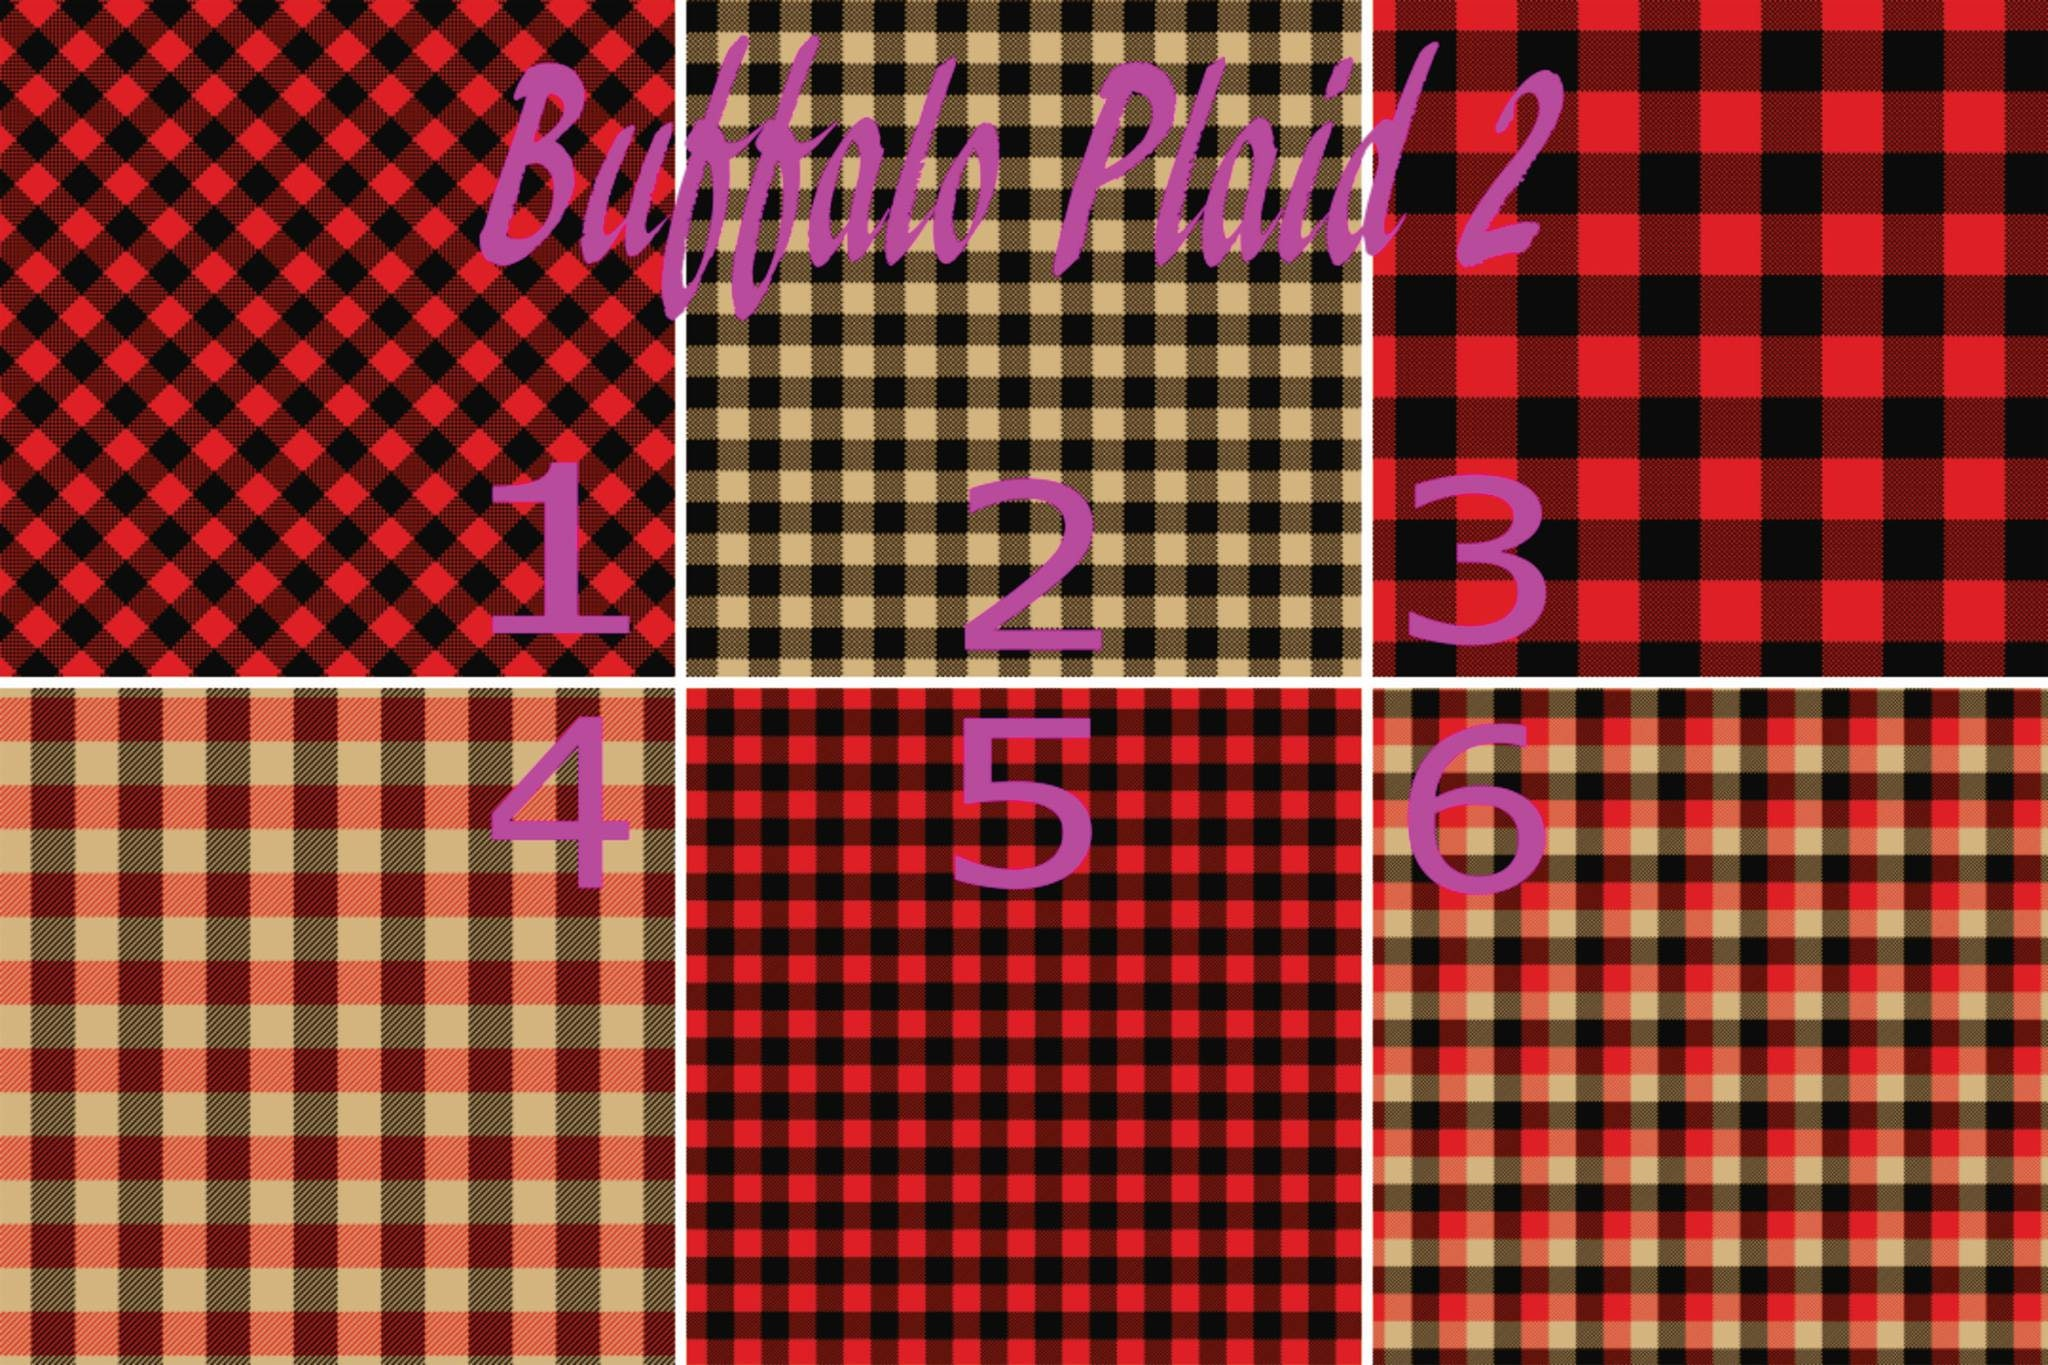 Pattern Vinyl Htv Buffalo Plaid Vinyl Red And Black Plaid